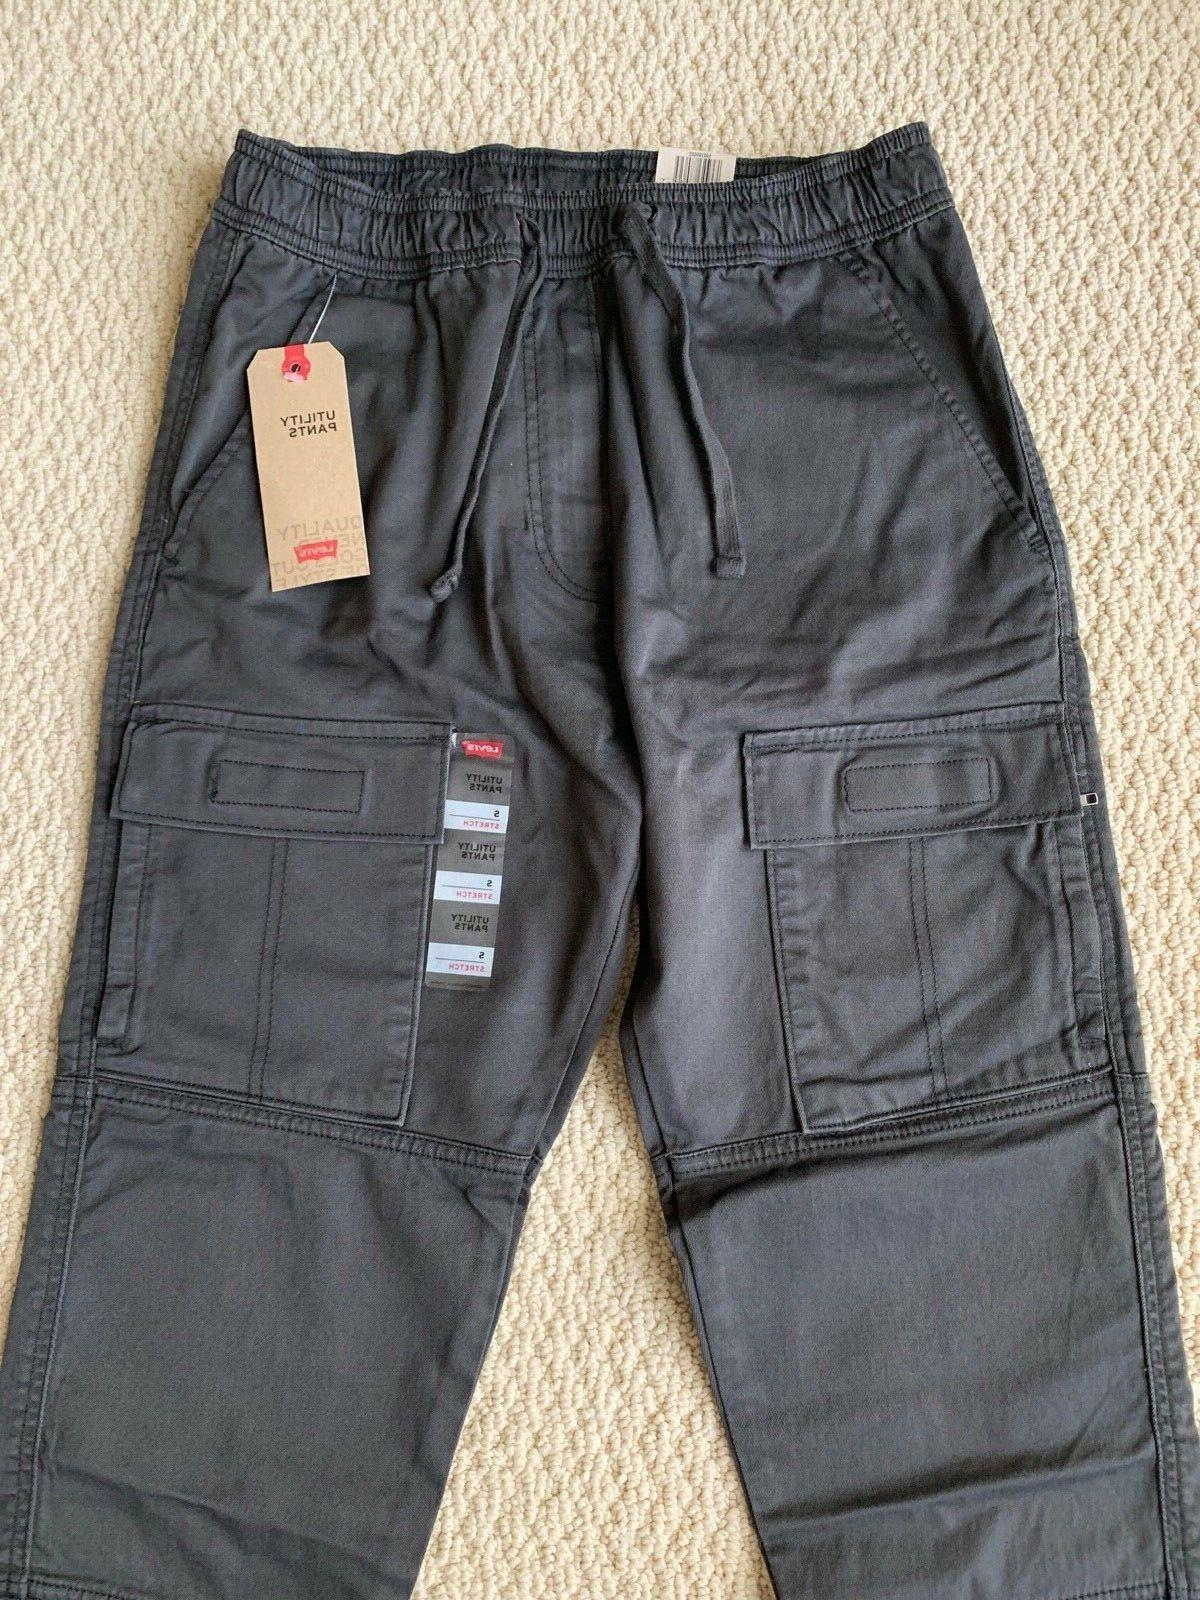 NWT Men's Levi's Utility Jogger SIZES